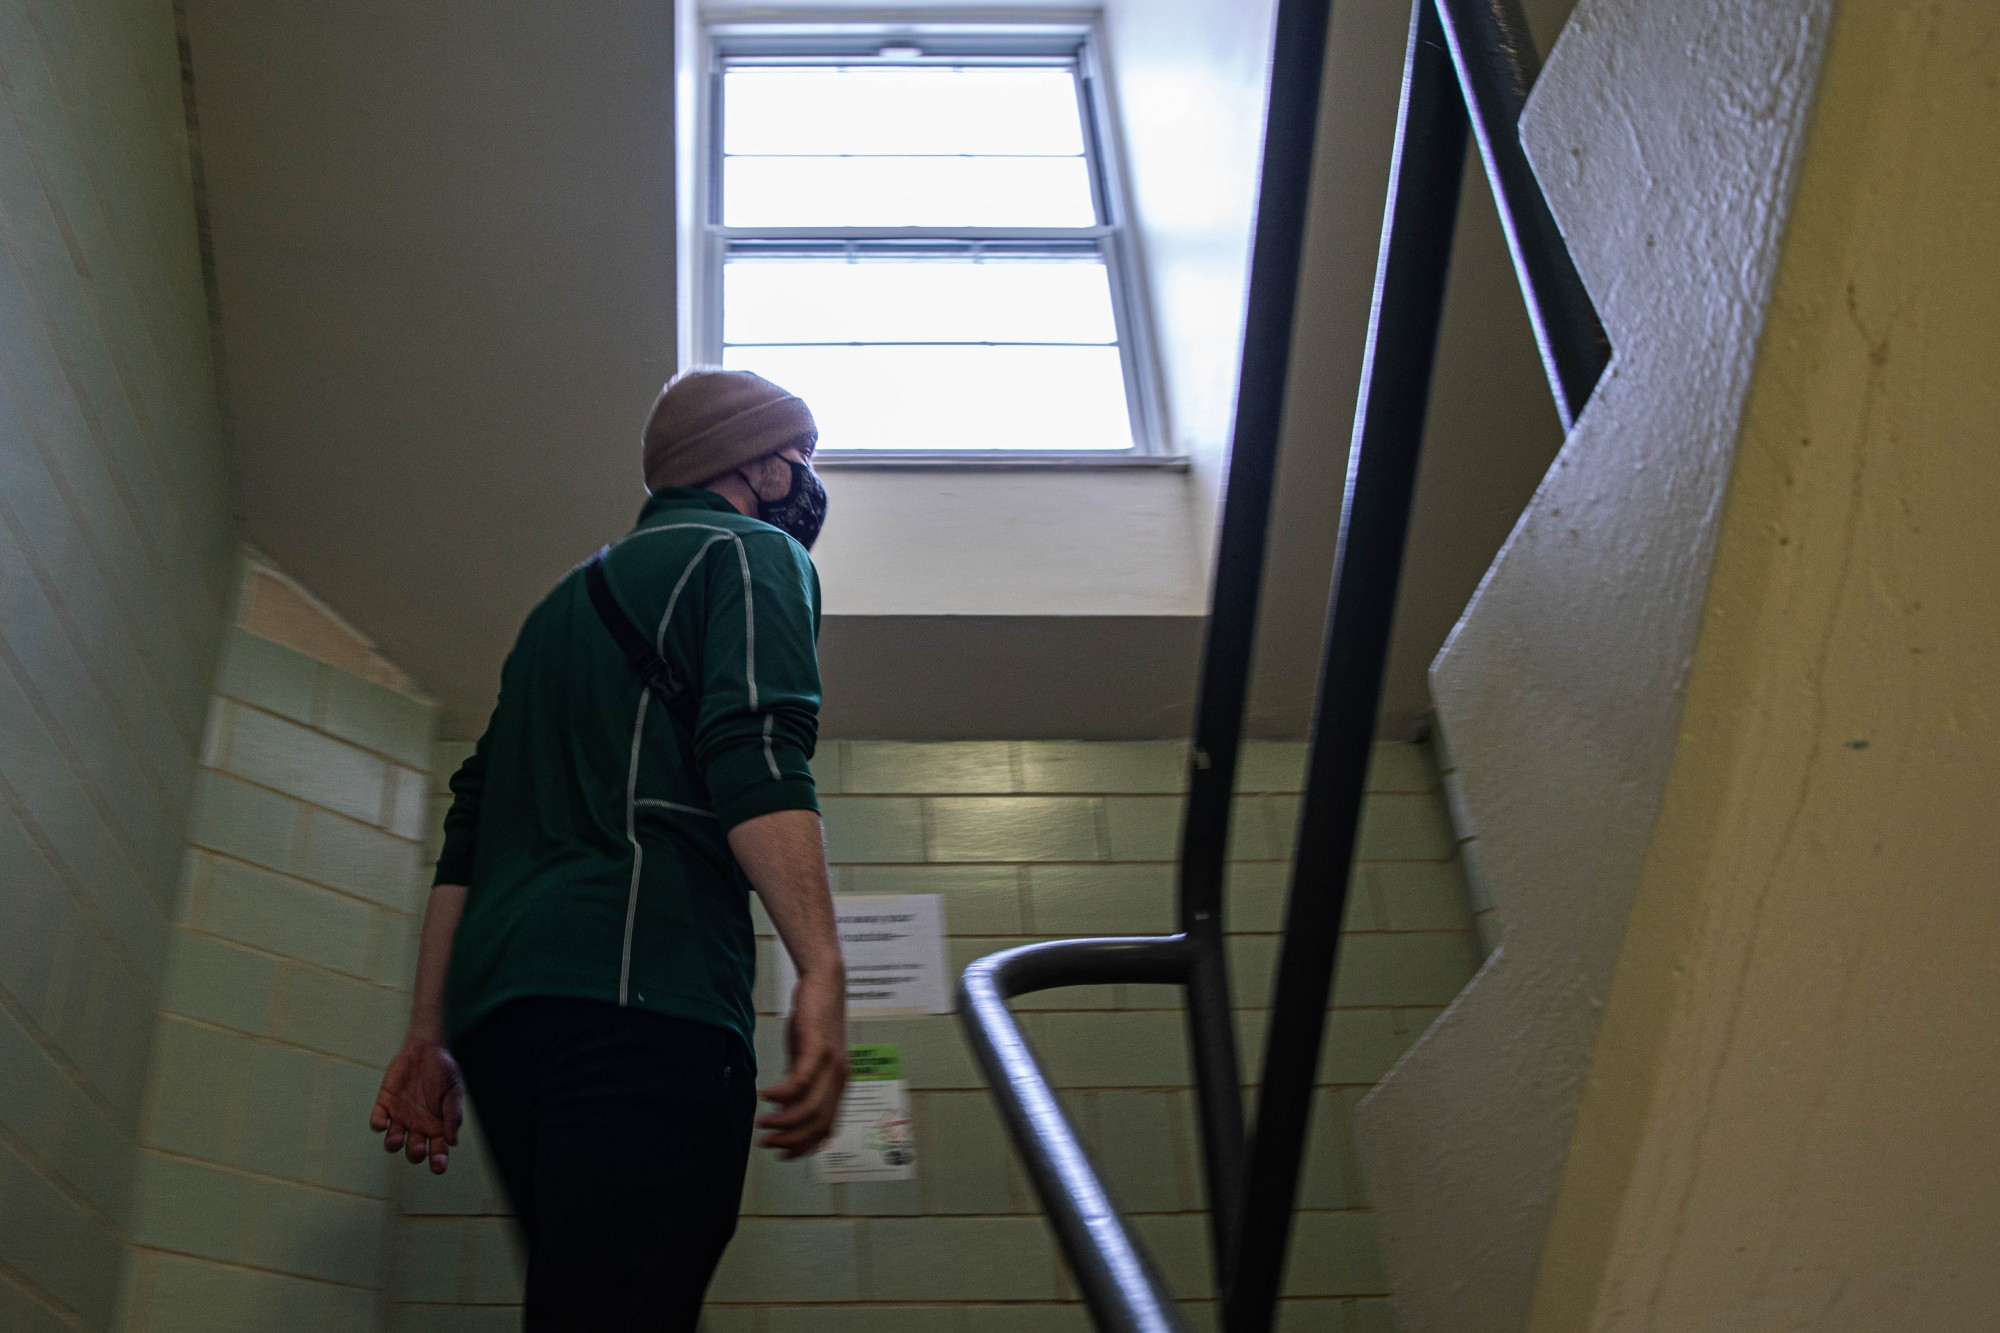 Danny Gray winds up multiple flights of stairs to reach his dorm room on the fourth floor of Tiffin Hall on Wednesday, Feb. 10, 2021. Gray is a freshman at Ohio University living on campus after students were allowed back for spring semester.